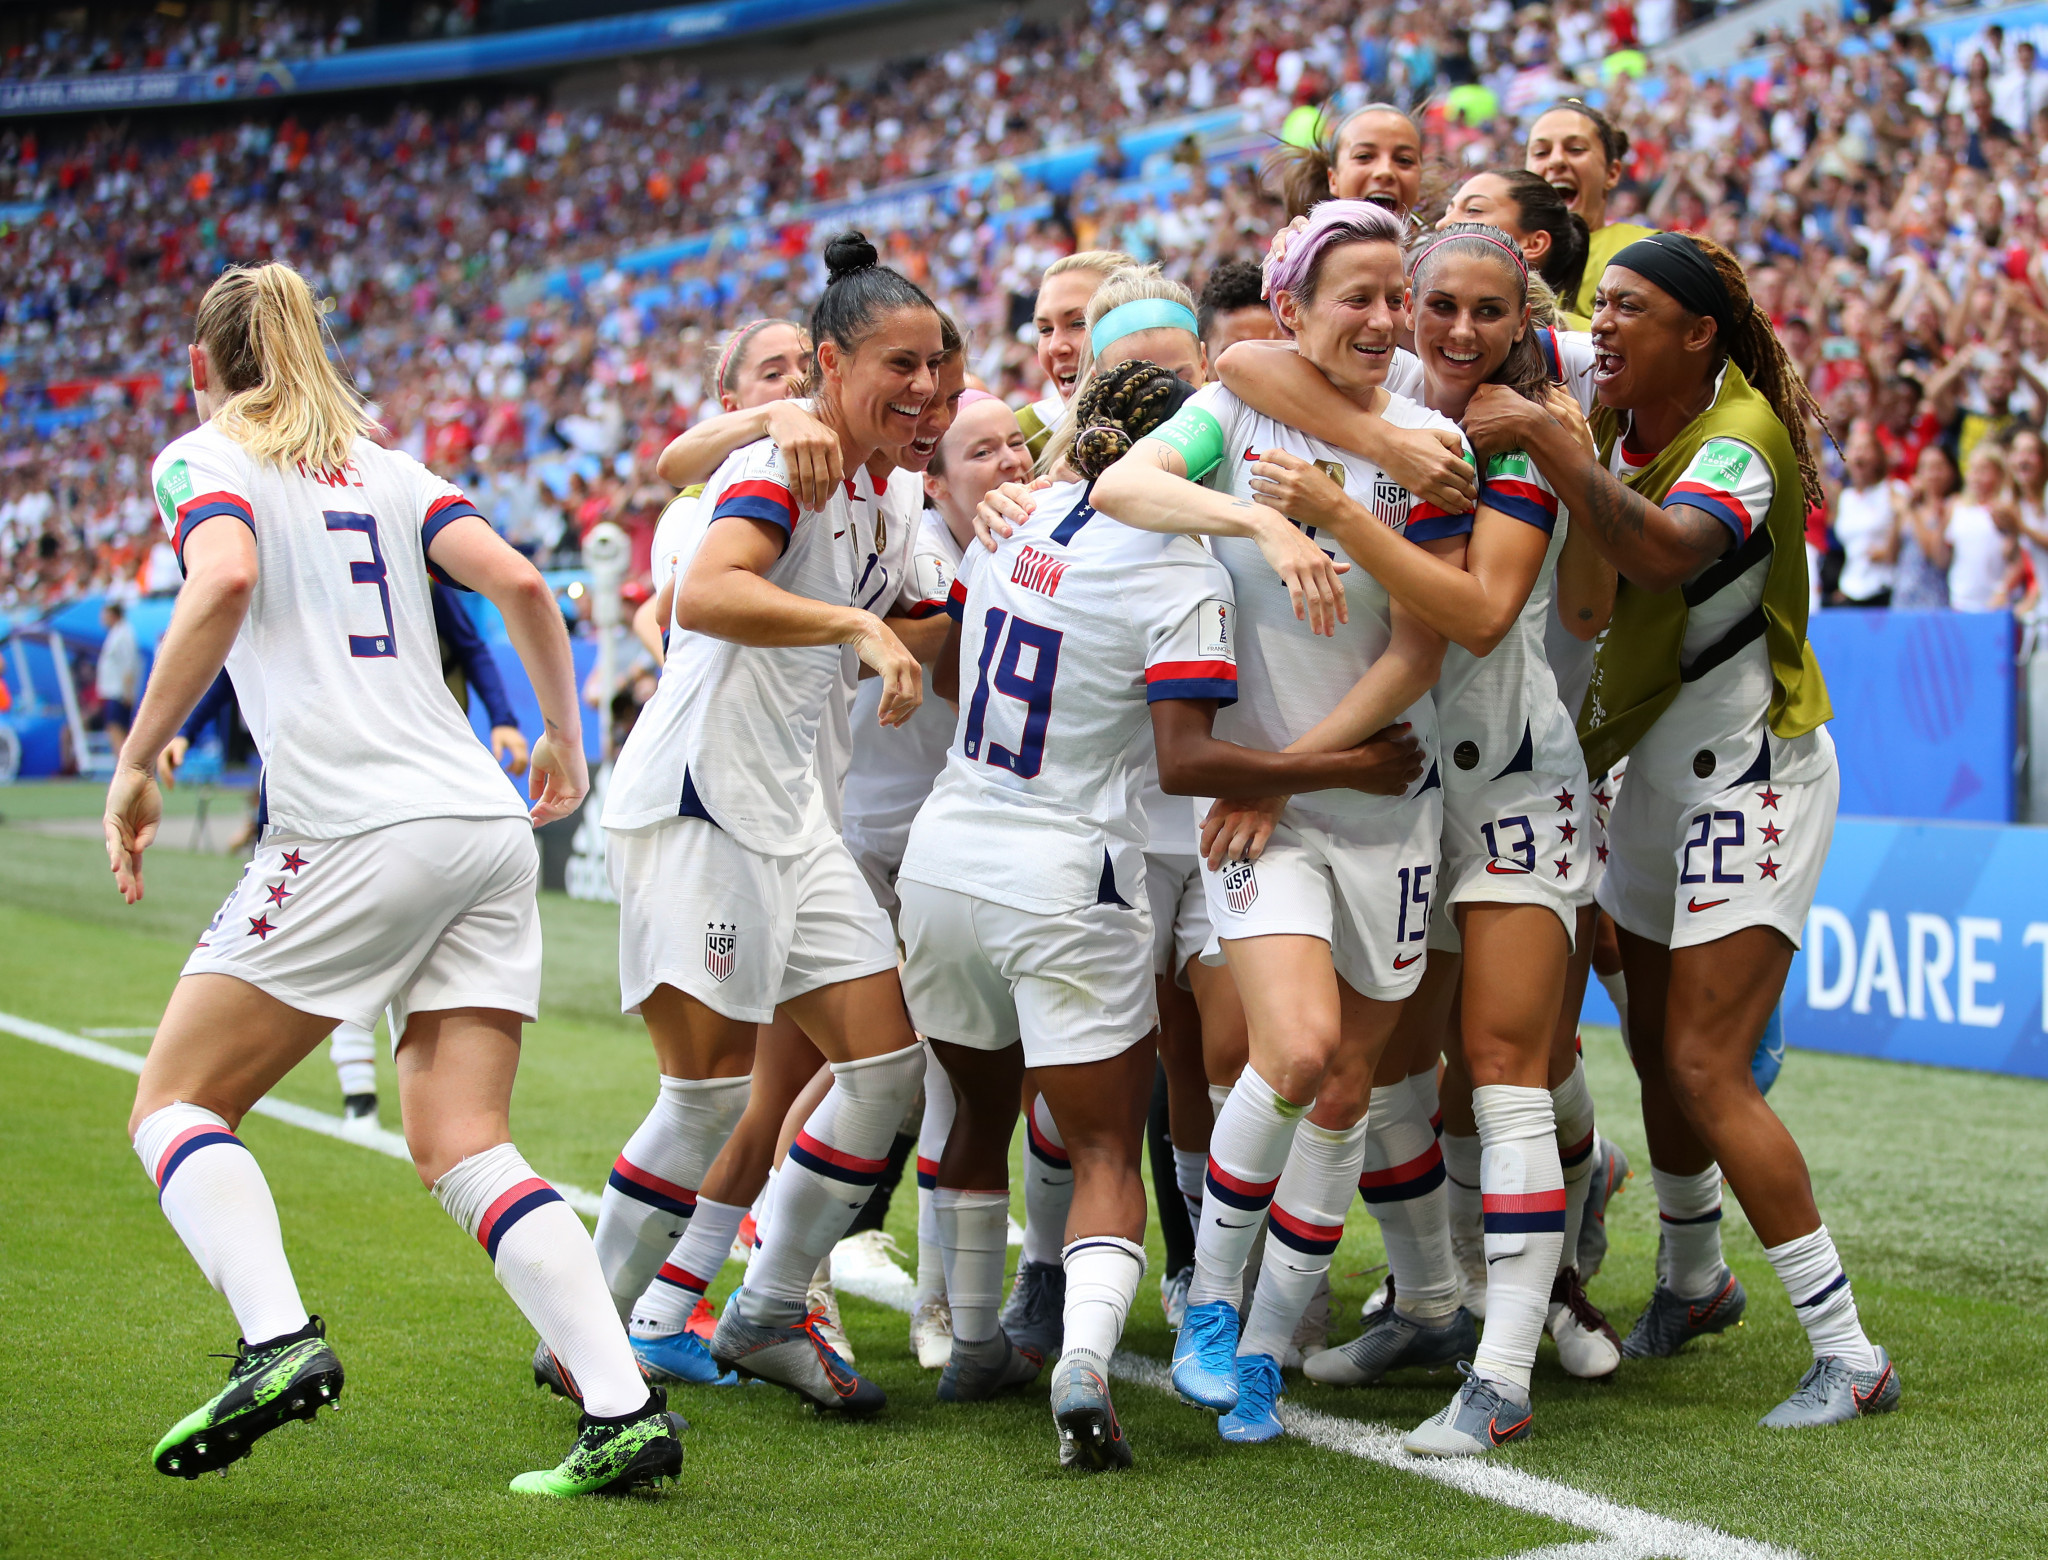 America are the current women's world champions after winning the 2019 World Cup in France ©Getty Images